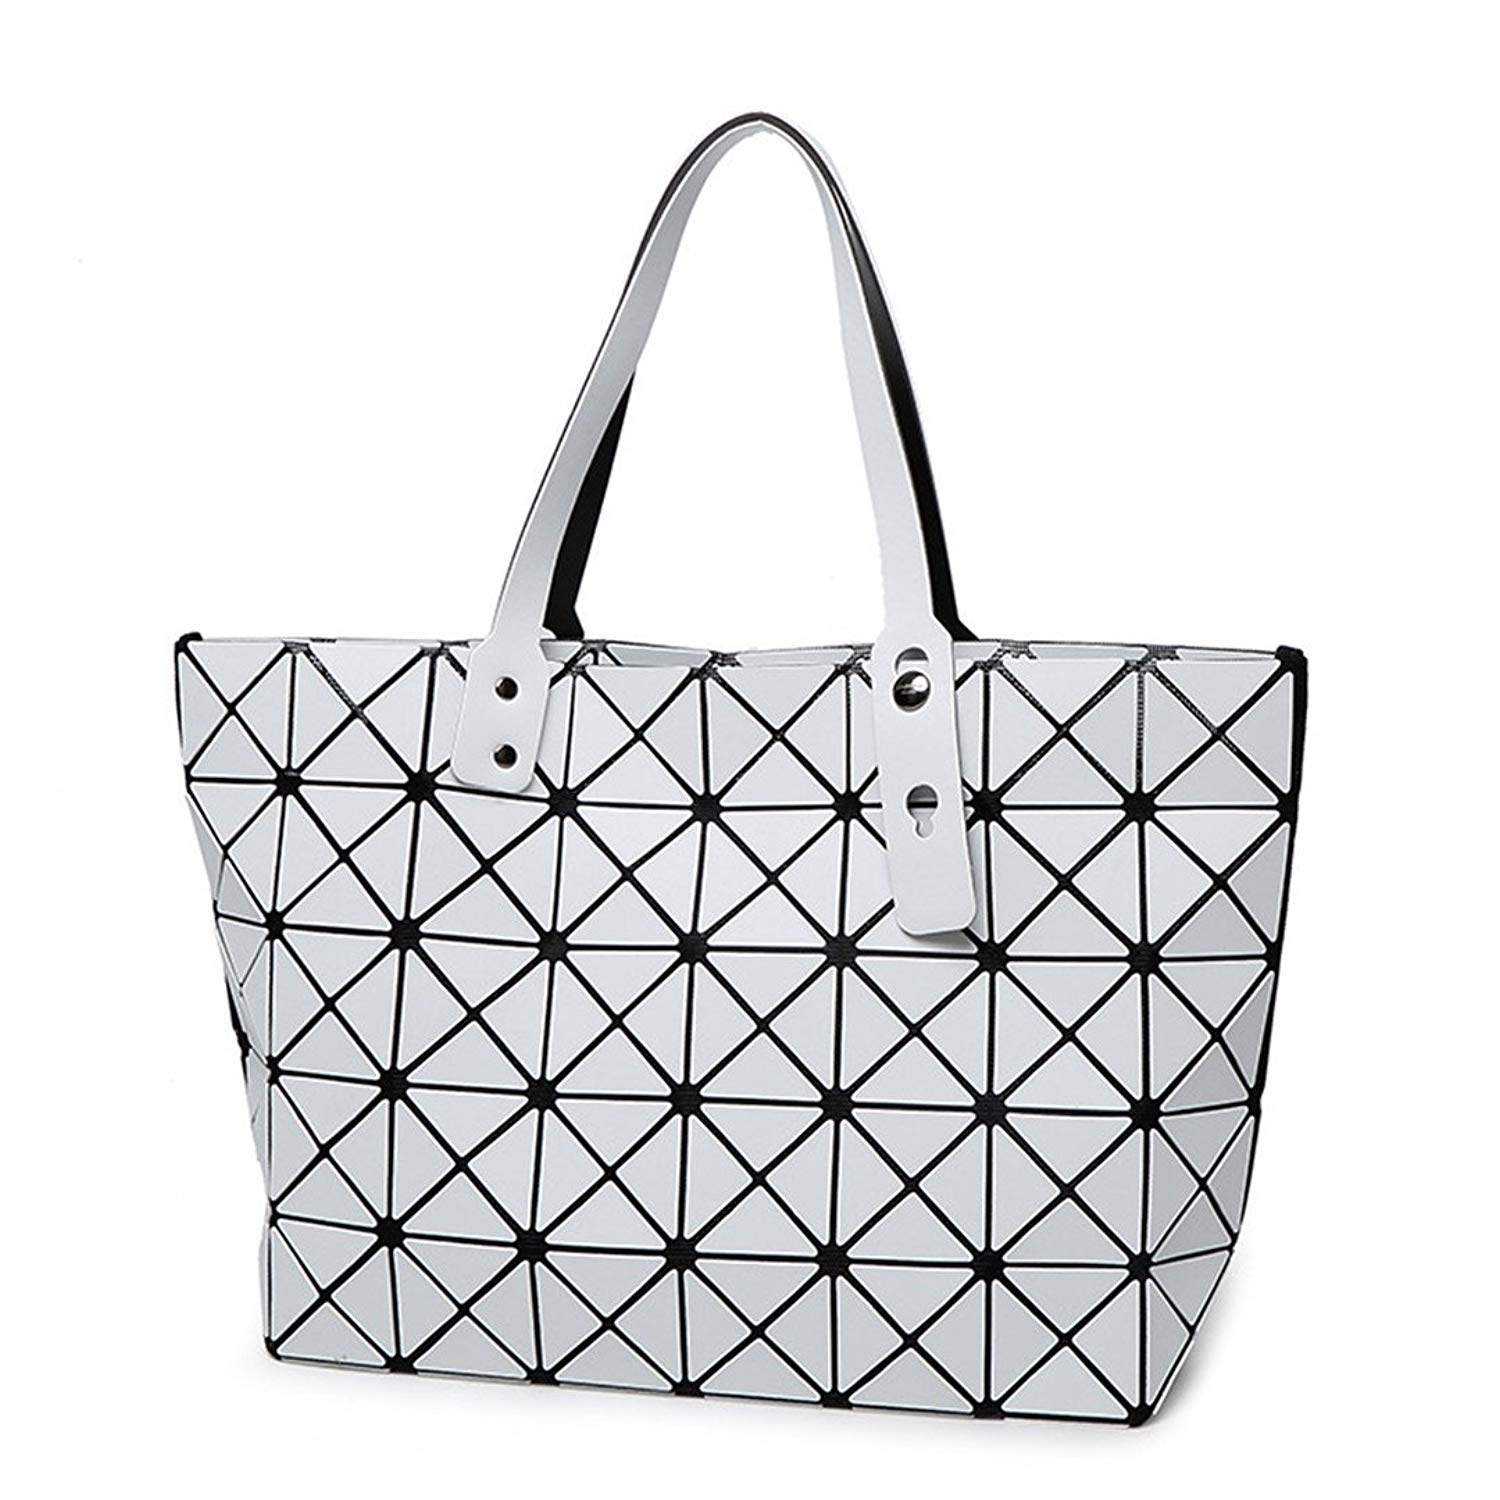 7cff04c3f68f Get Quotations · Bao Bao Bag Folding Matt Metal Drawing Shoulder Handbag  Baobao Bag Casual Women Tote Handle Bag